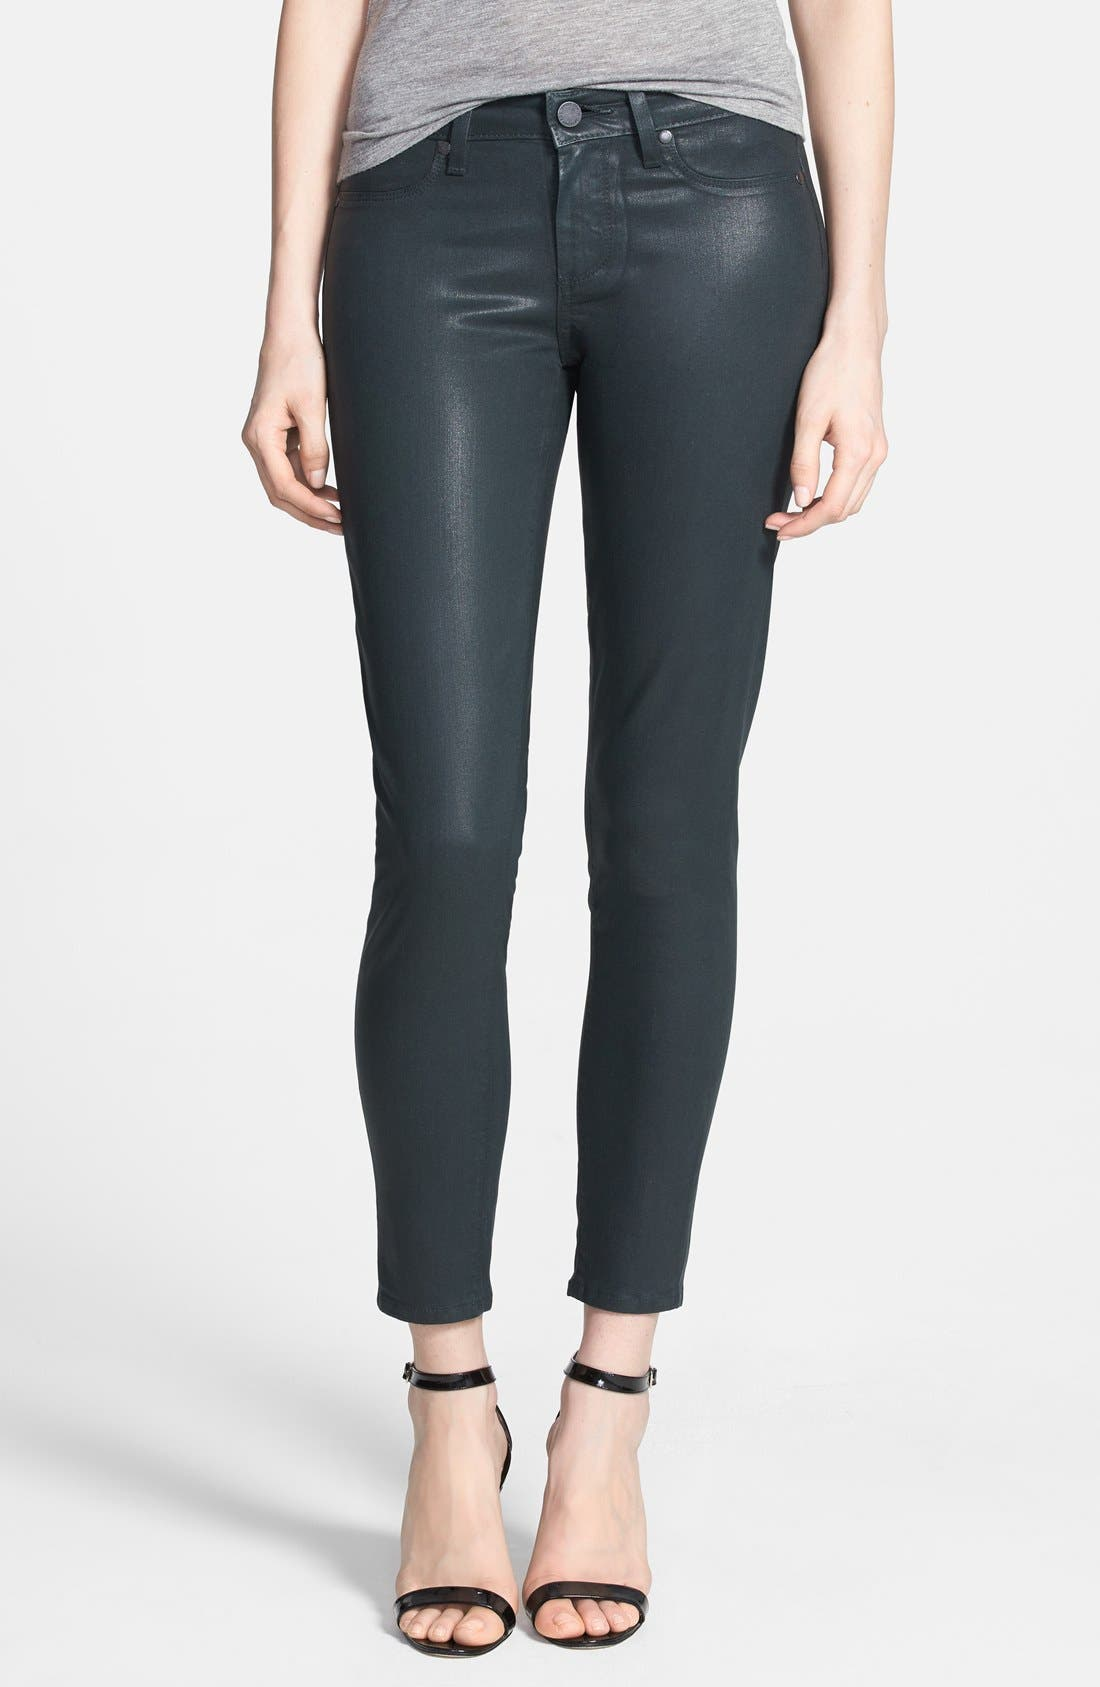 Main Image - Paige Denim 'Verdugo' Coated Skinny Ankle Jeans (Evergreen Silk)